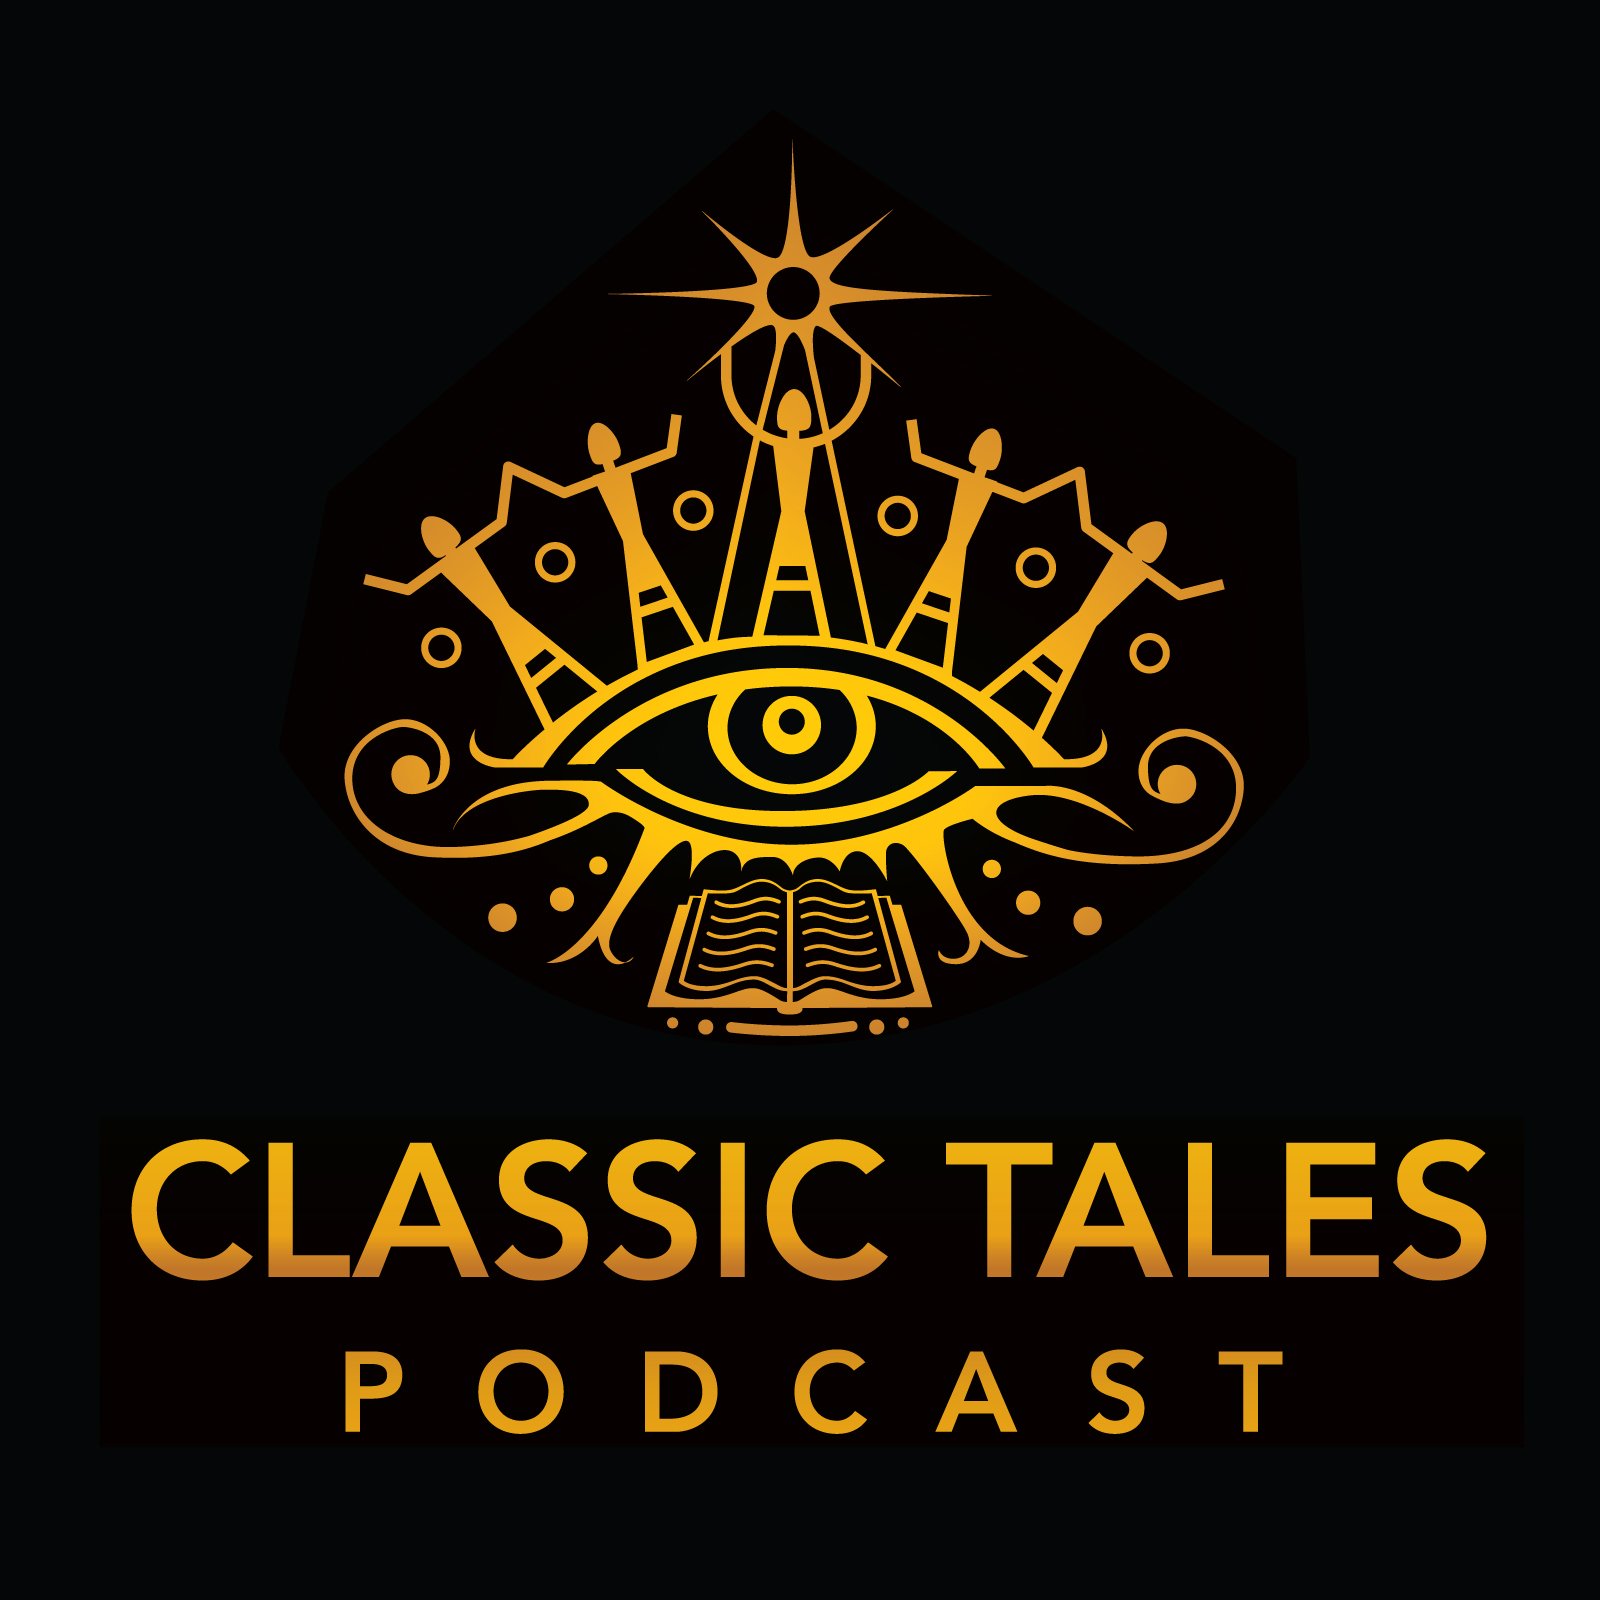 The Classic Tales Podcast logo